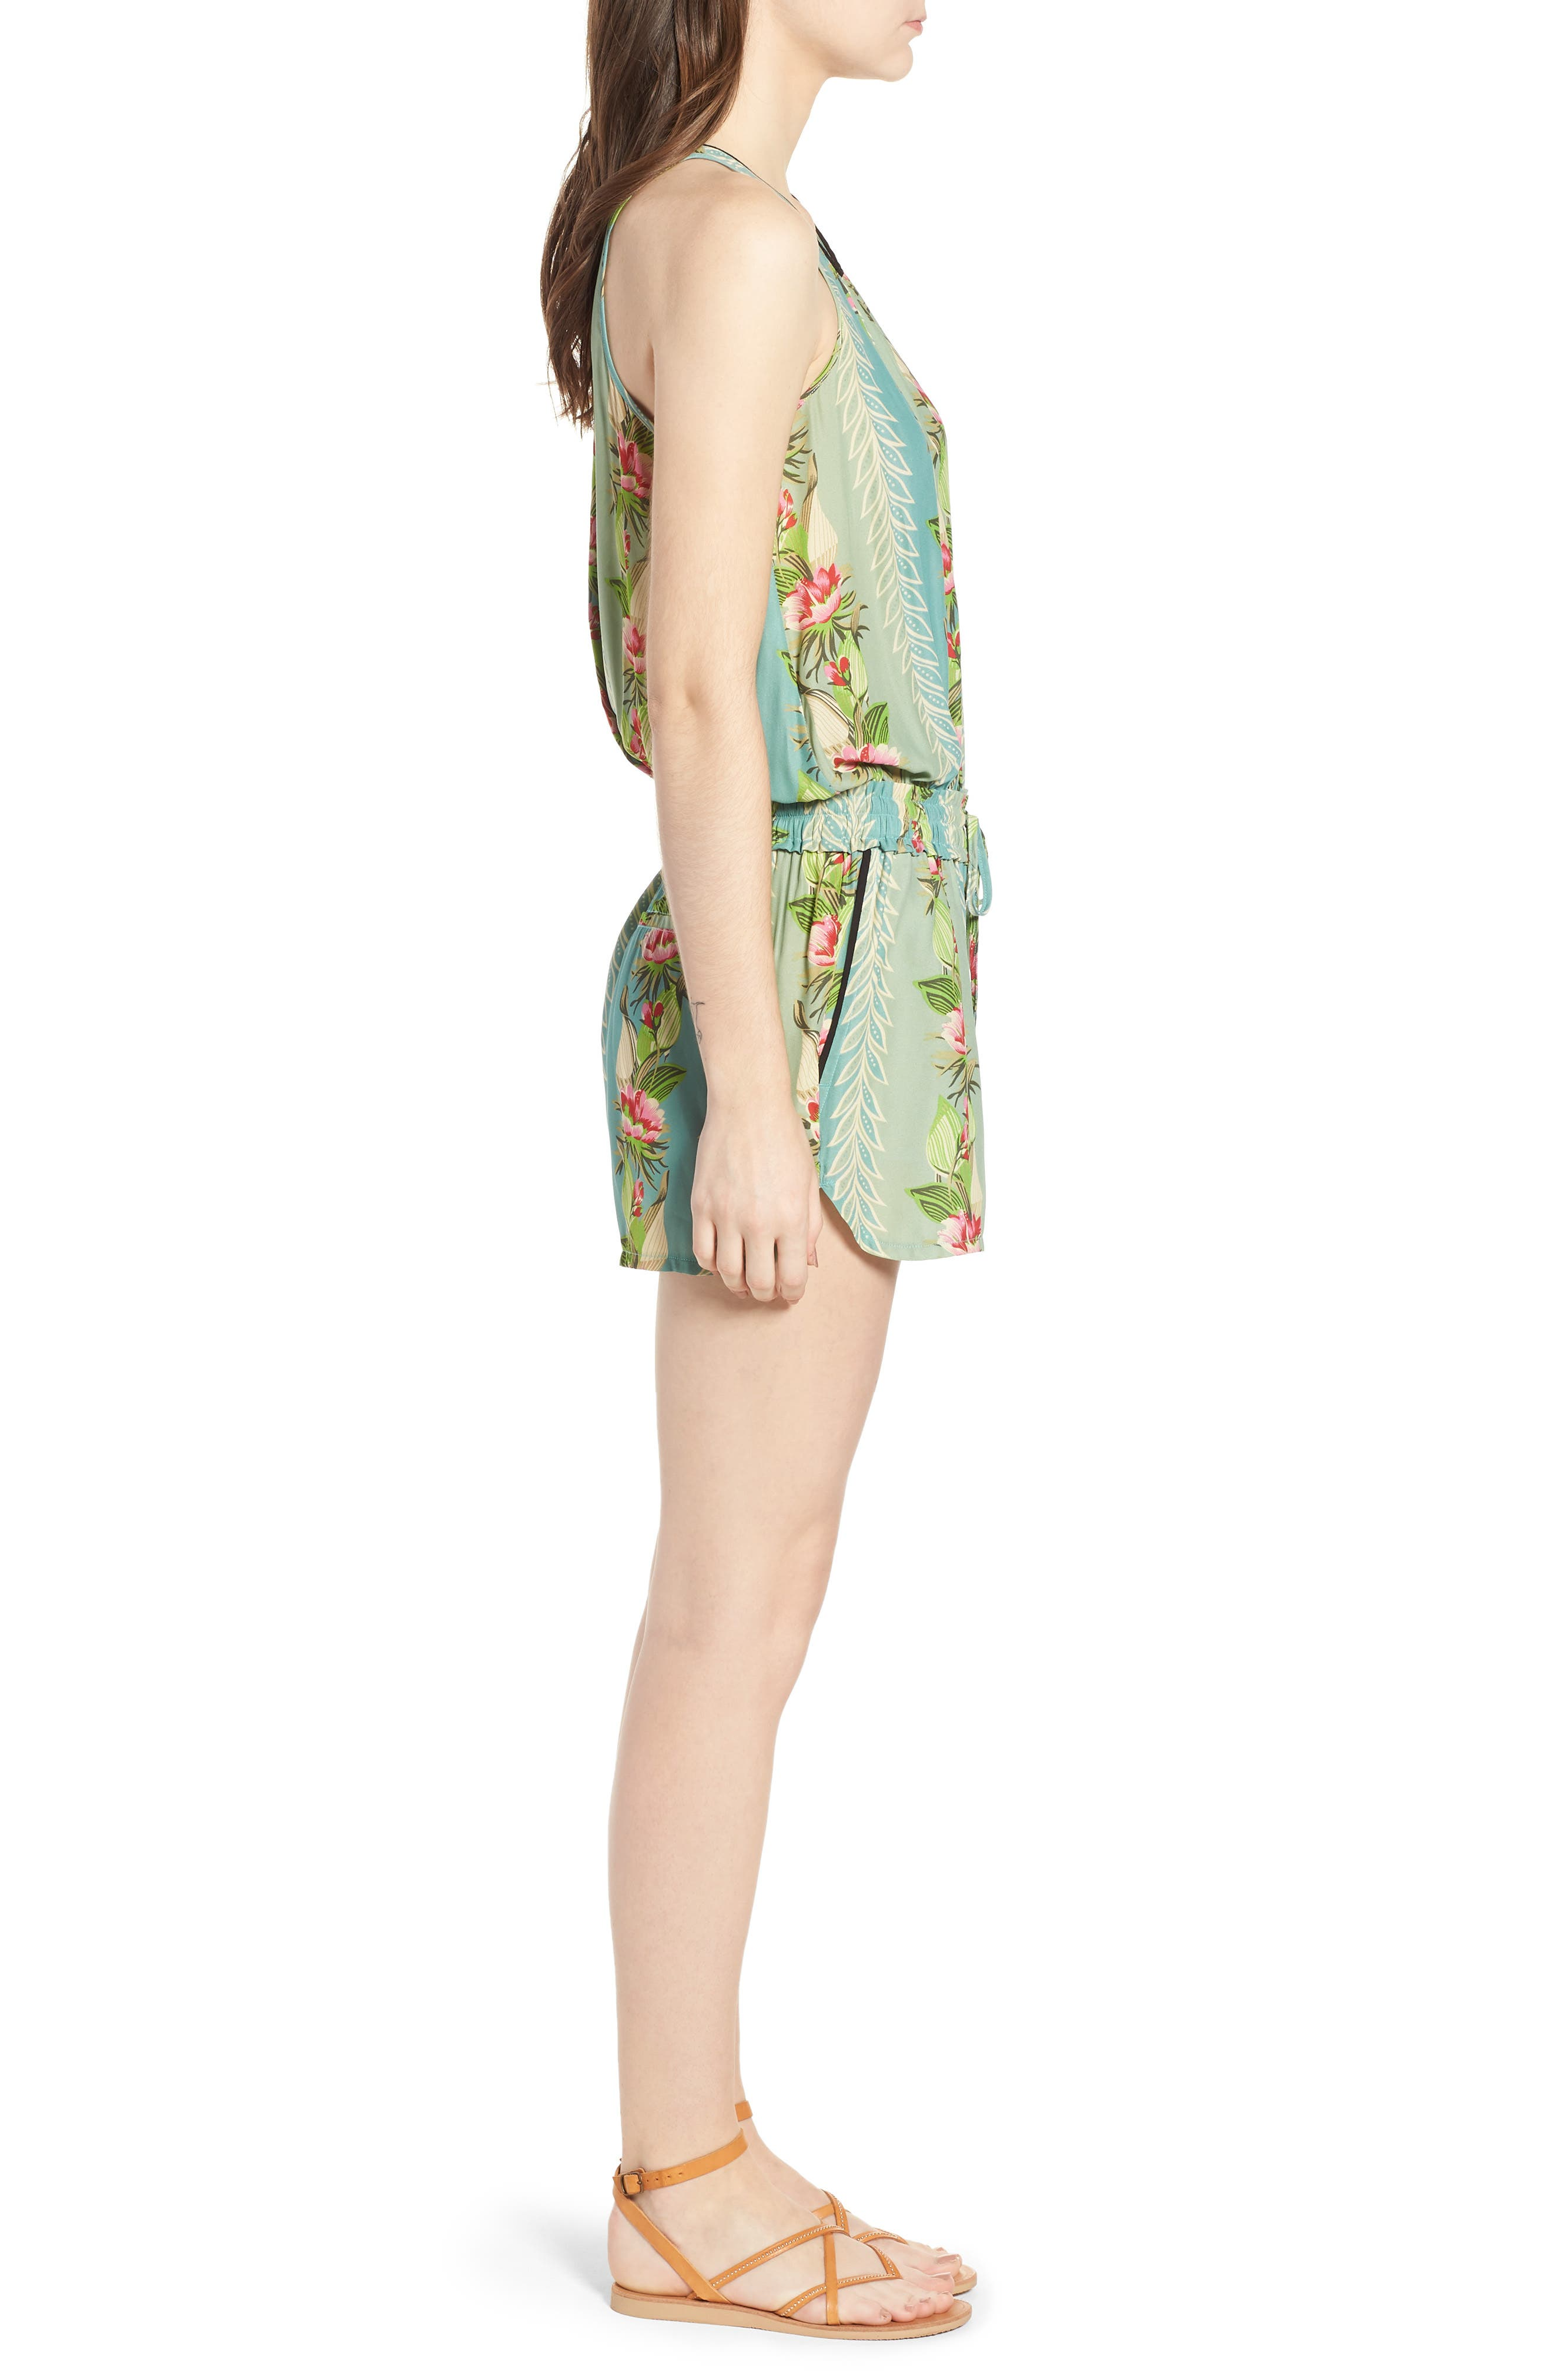 SCOTCH & SODA,                             Print All in One Romper,                             Alternate thumbnail 3, color,                             440